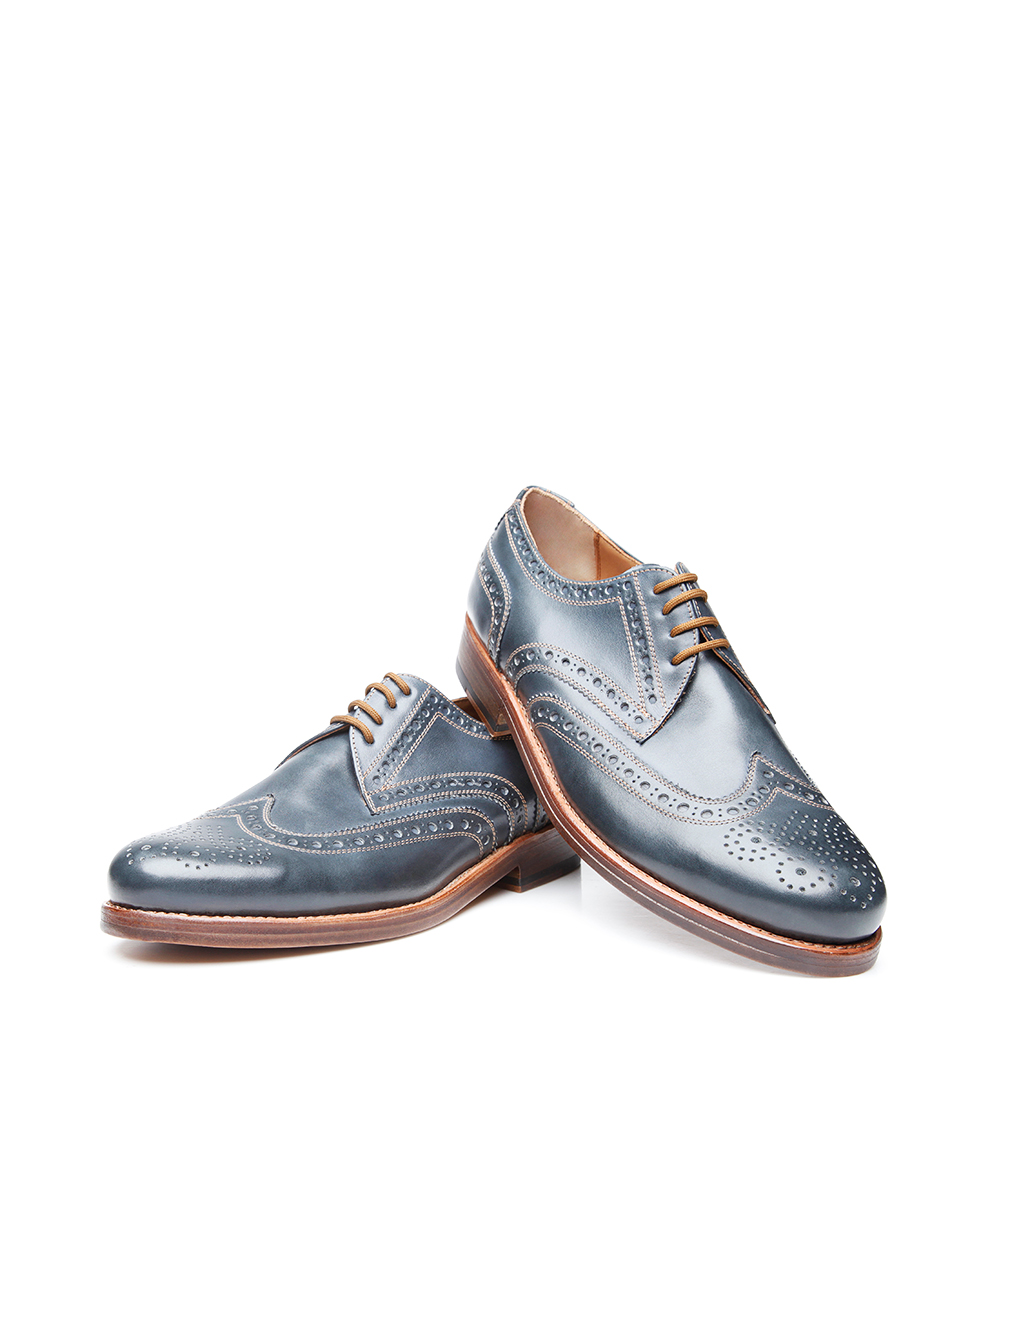 Zürich Full-Brogue AC